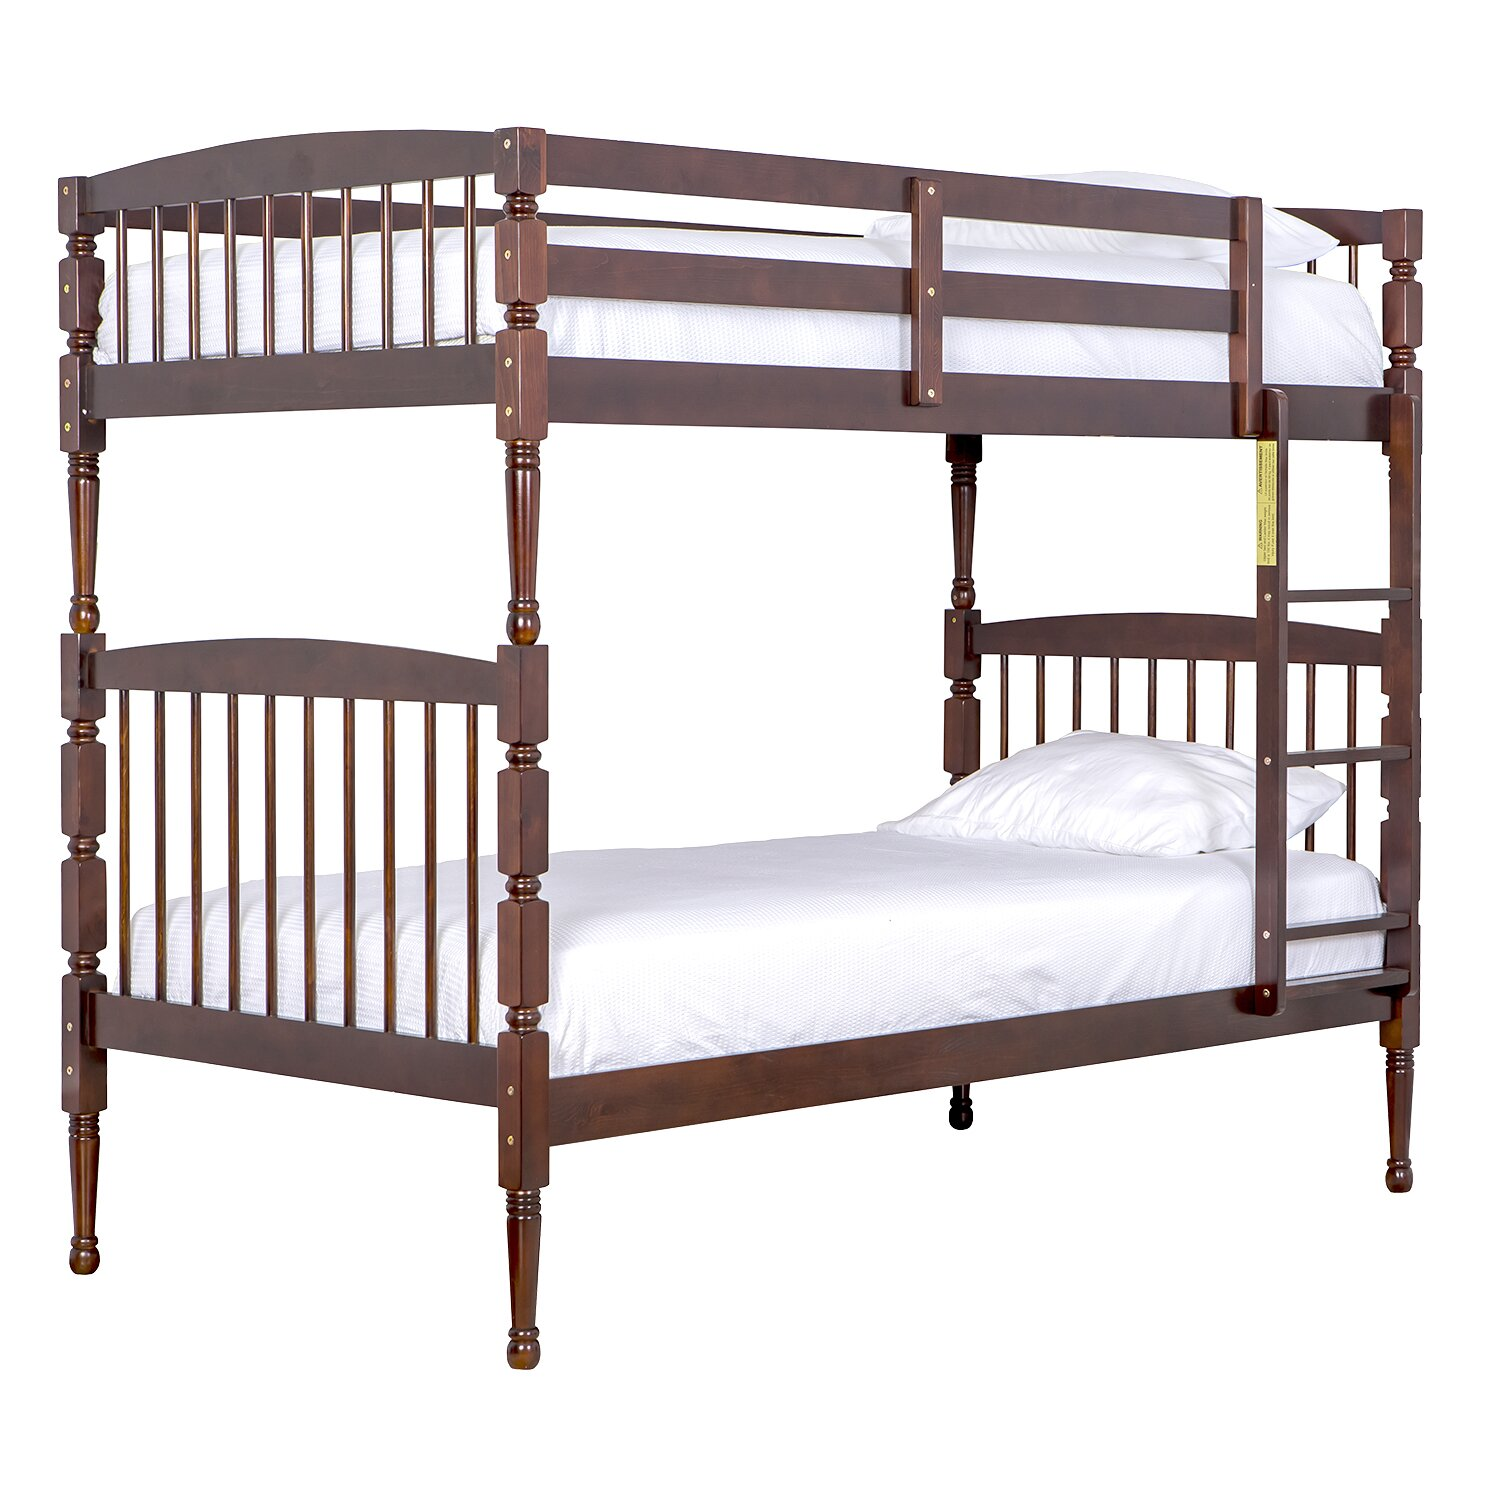 wayfair bed assembly instructions